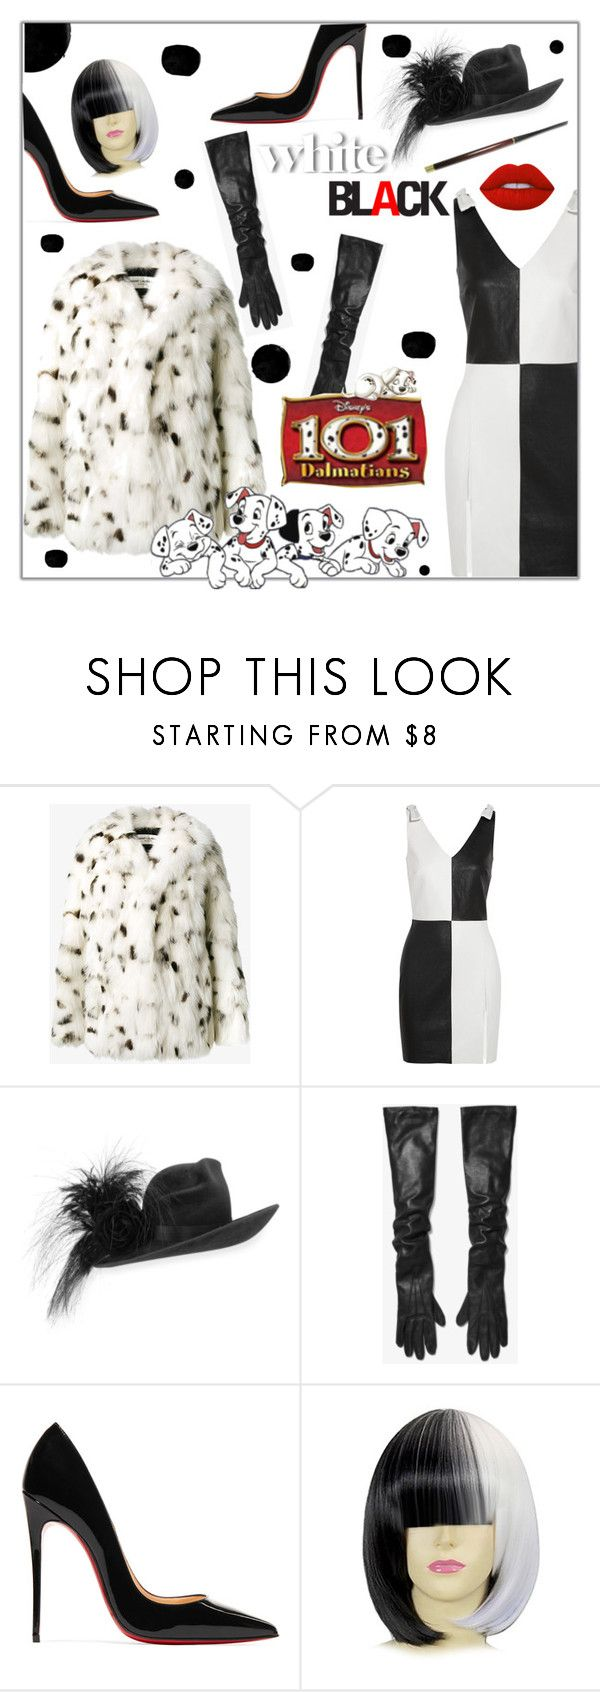 """""""Cruella Deville Halloween costume"""" by styledbytrell ❤ liked on Polyvore featuring Yves Saint Laurent, Philip Treacy, Michael Kors, Disney, Christian Louboutin and Lime Crime"""